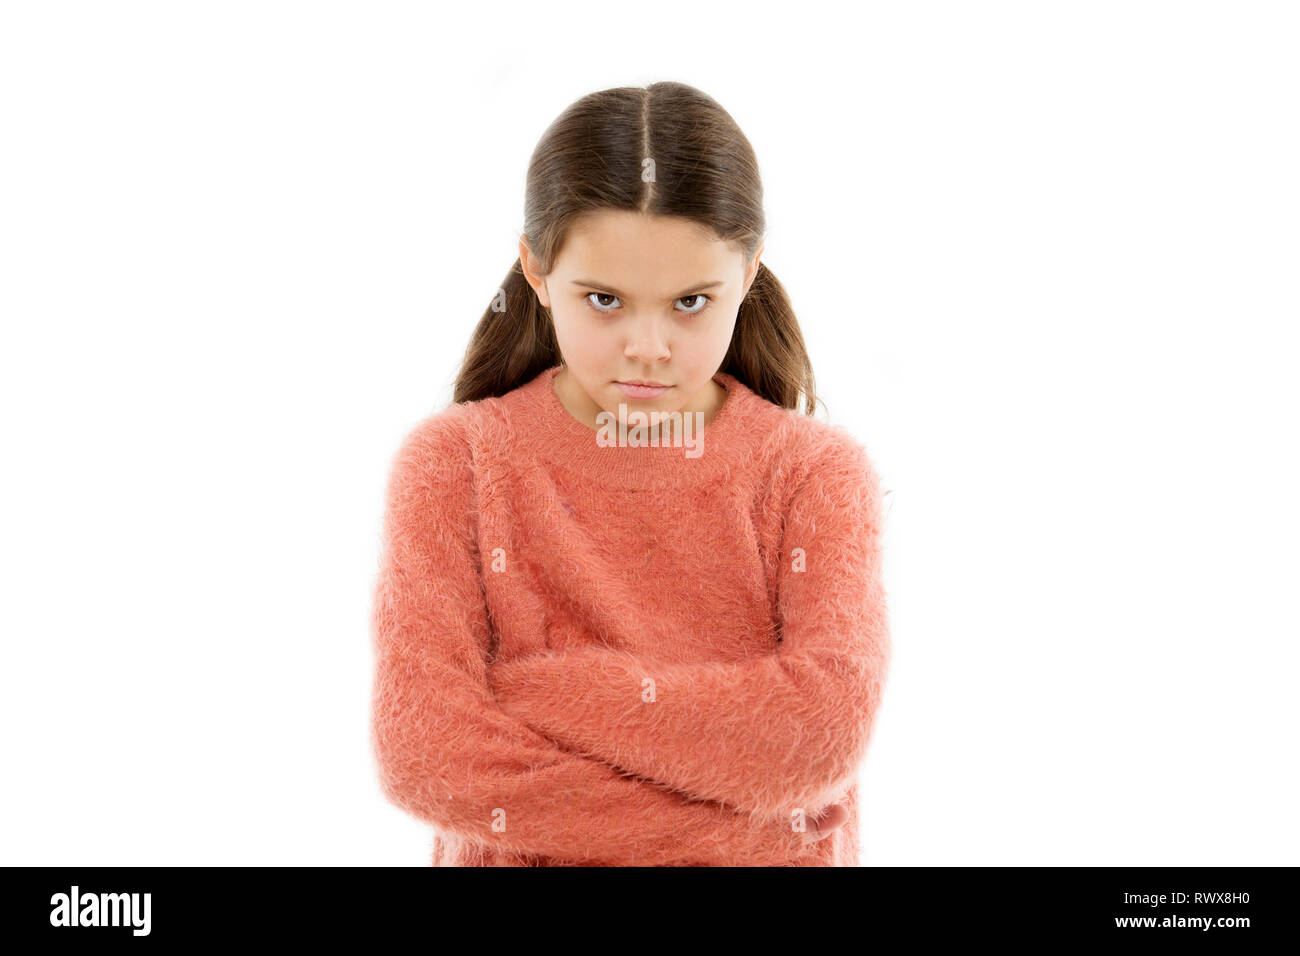 Still angry. Disagreement and stubbornness. Girl serious face offended white background. Kid little girl unhappy looks strictly. Girl folded arms on chest looks serious. Stubborn child temper. - Stock Image